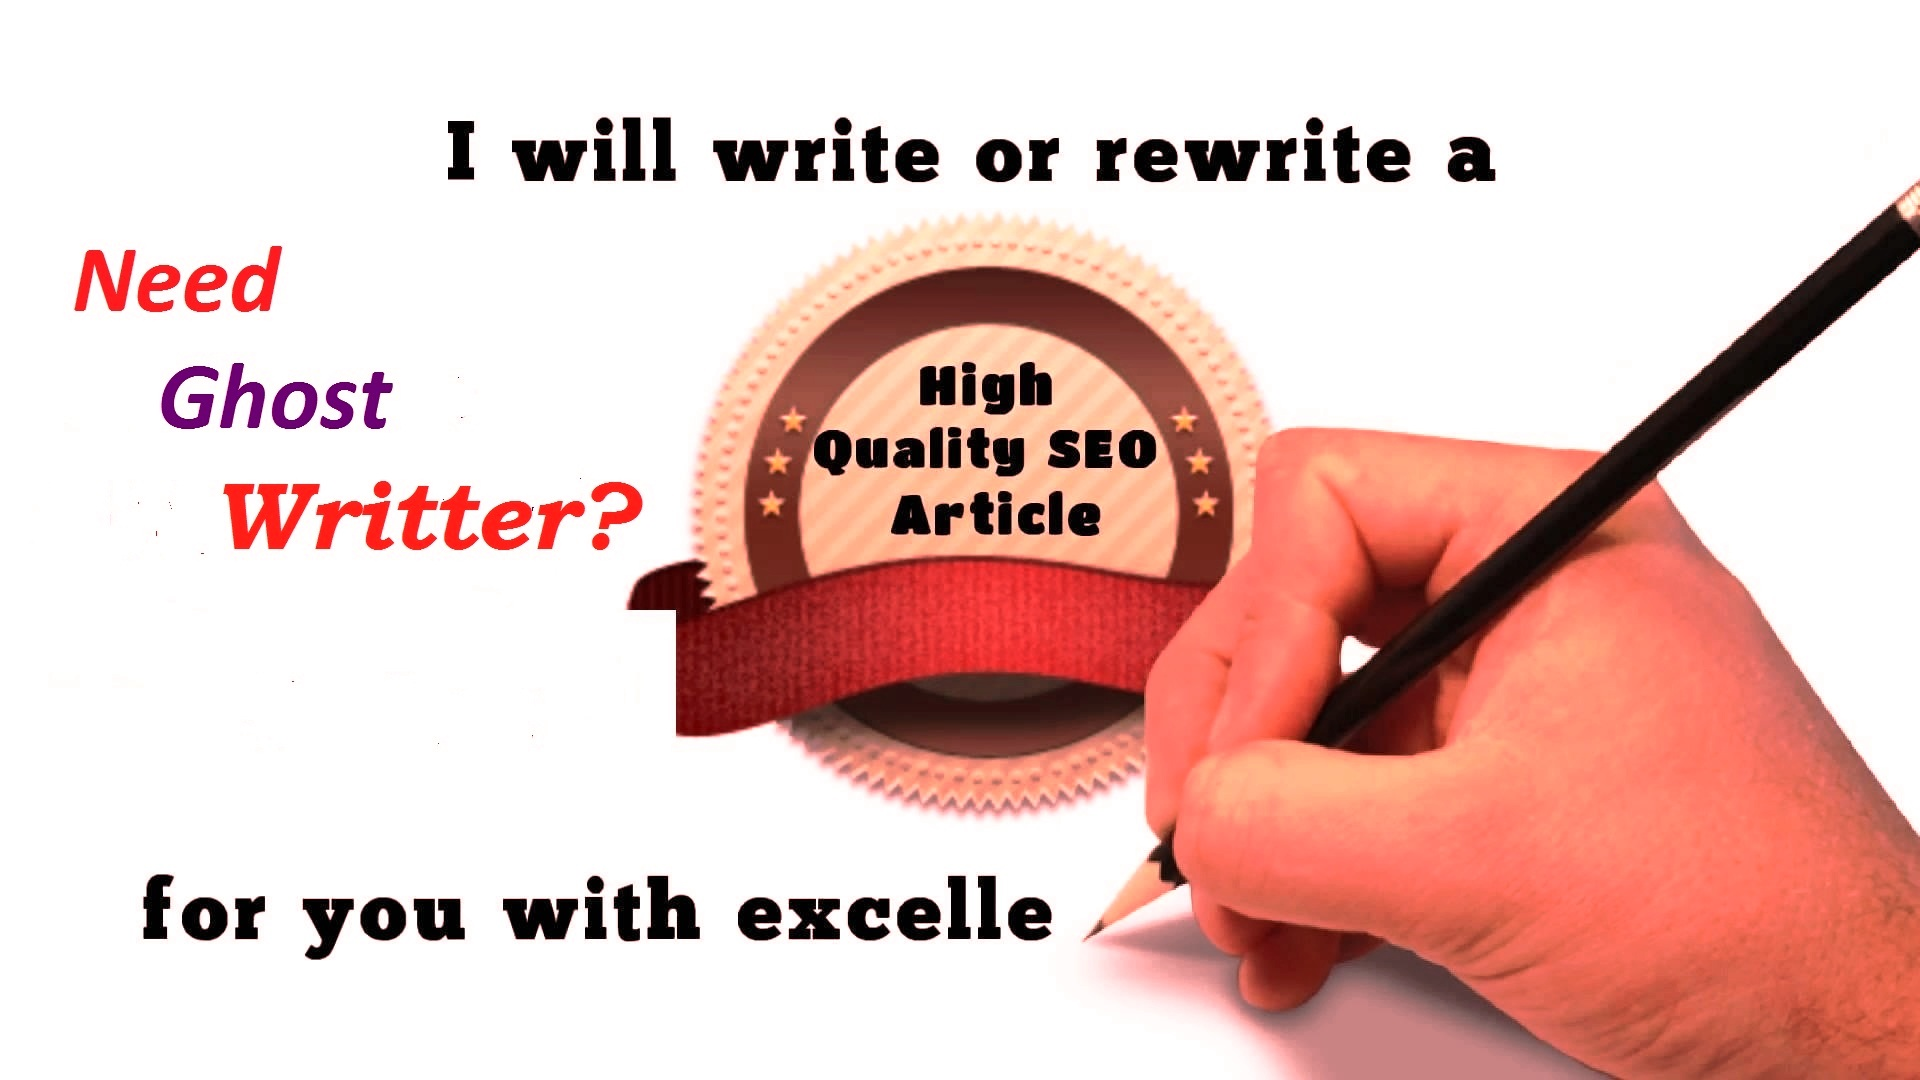 SEO Article Freelance Writer - I Will Write 300 - 450+ SEO Article For Blog Or Website Post Within 24 Hours - Hurry Order Now Limited Time OFFER